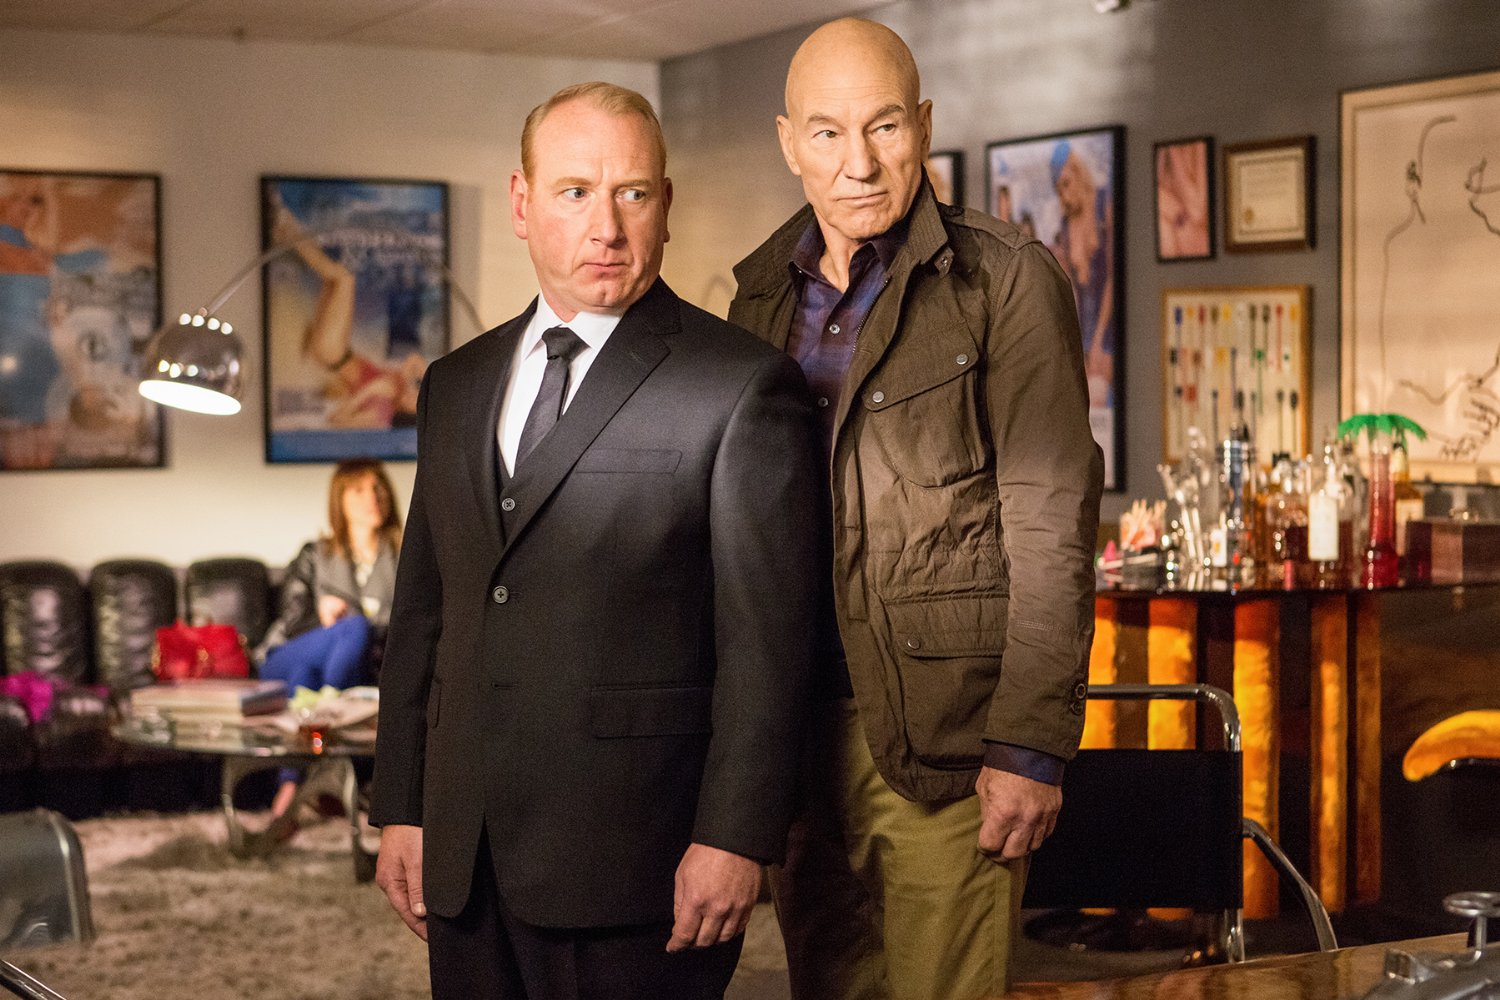 Patrick_Stewart_and_Adrian_Scarboro